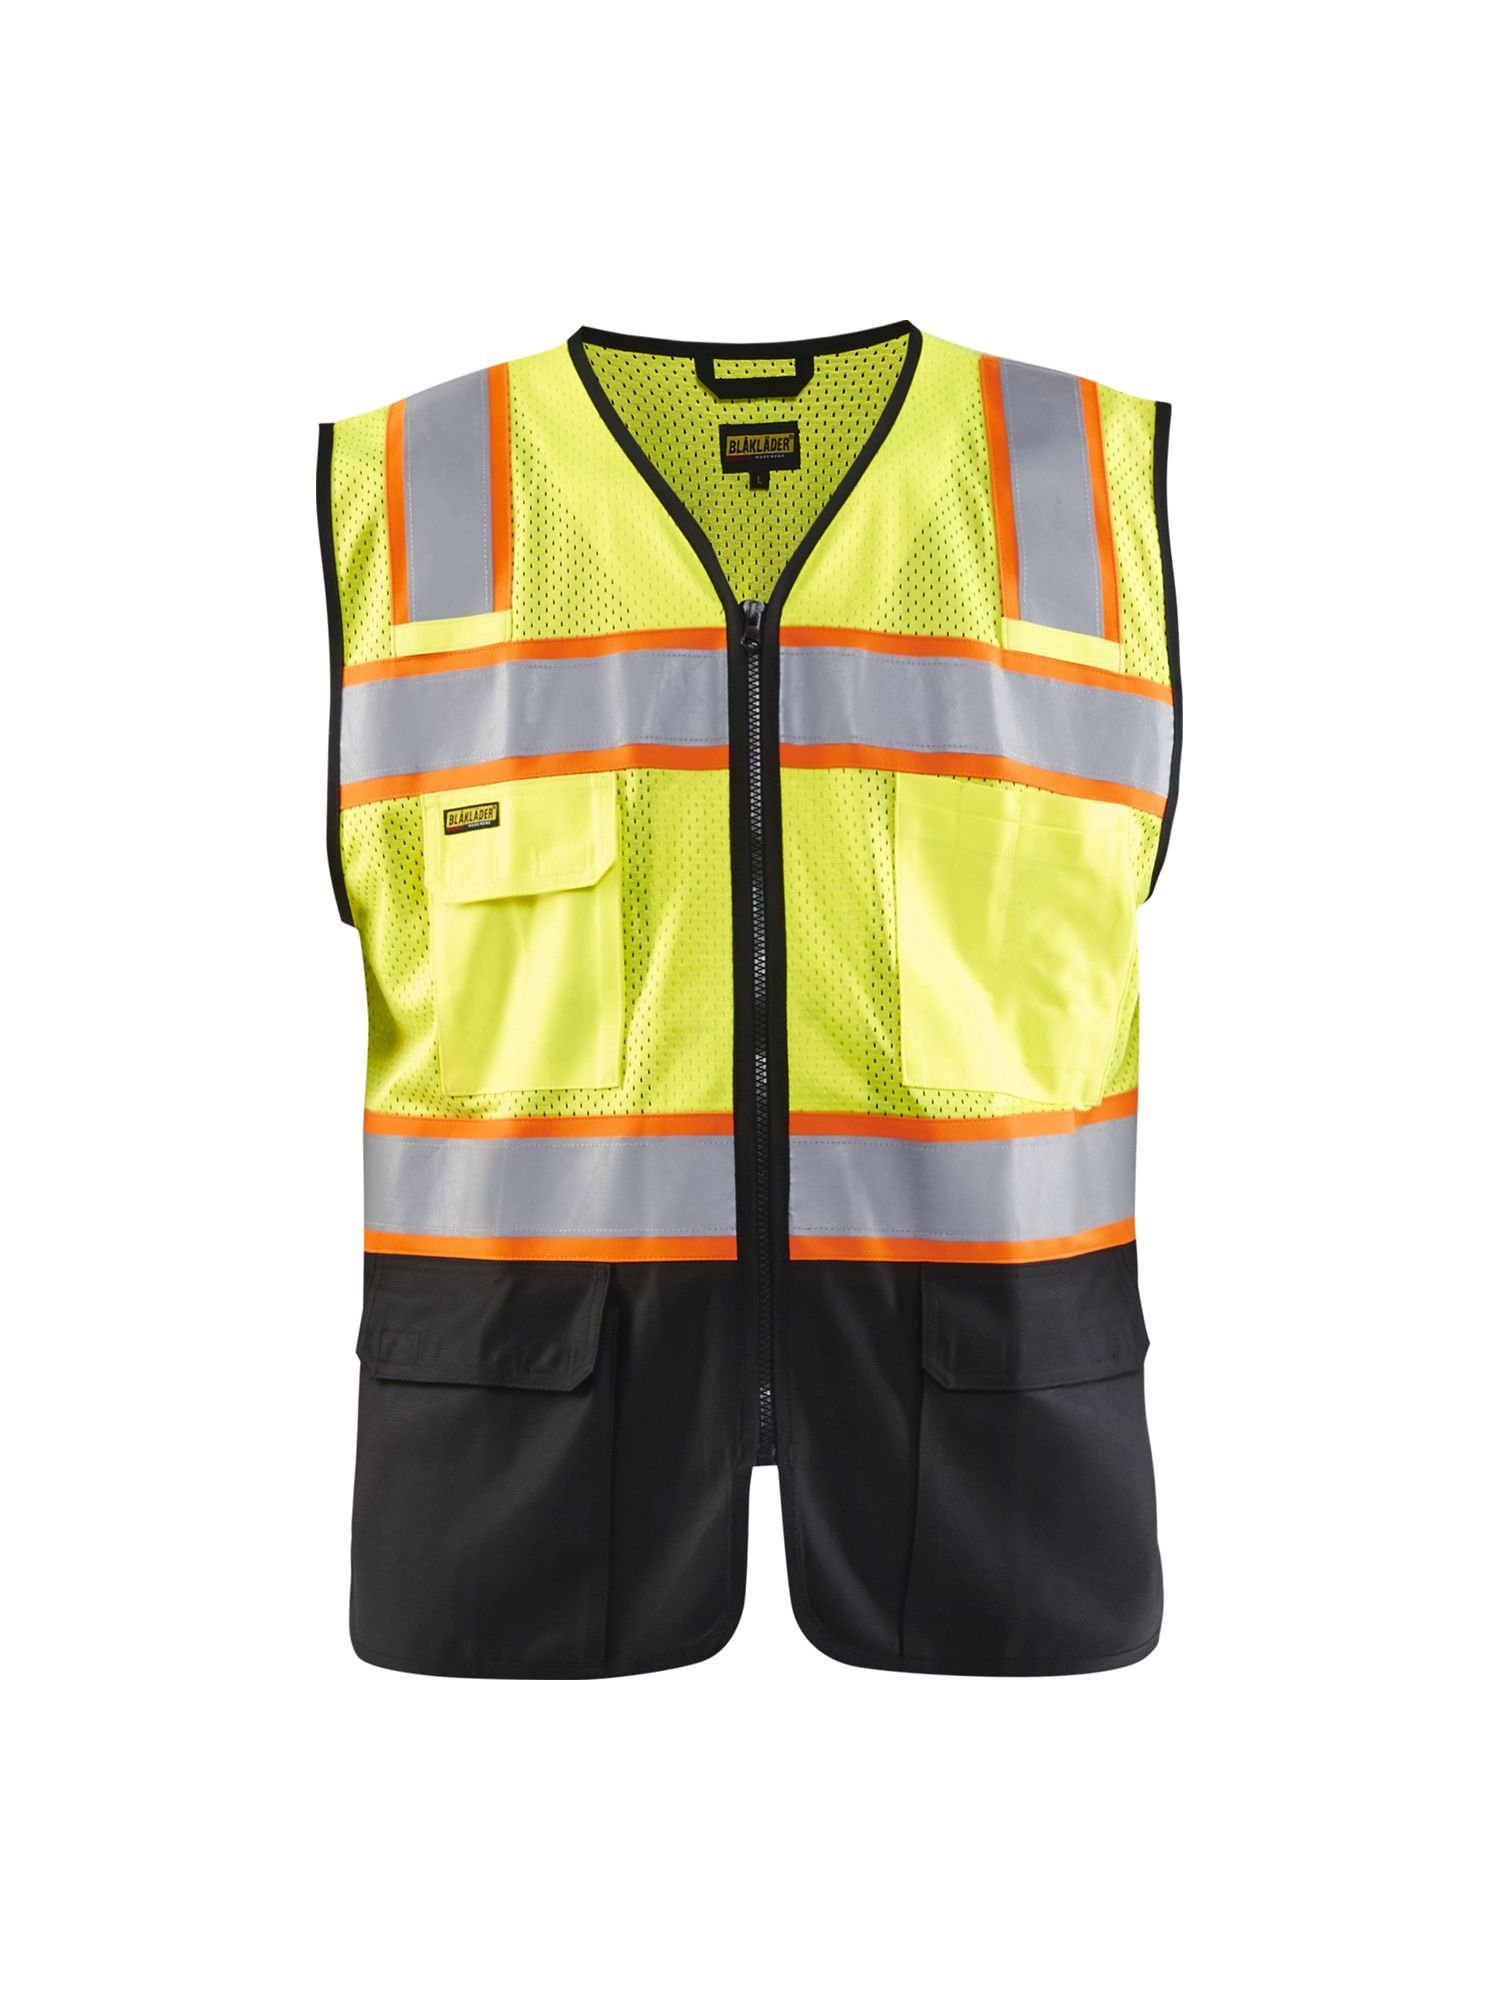 Blaklader Yellow/Black Size Small Hivis Vest for Carpentry Construction